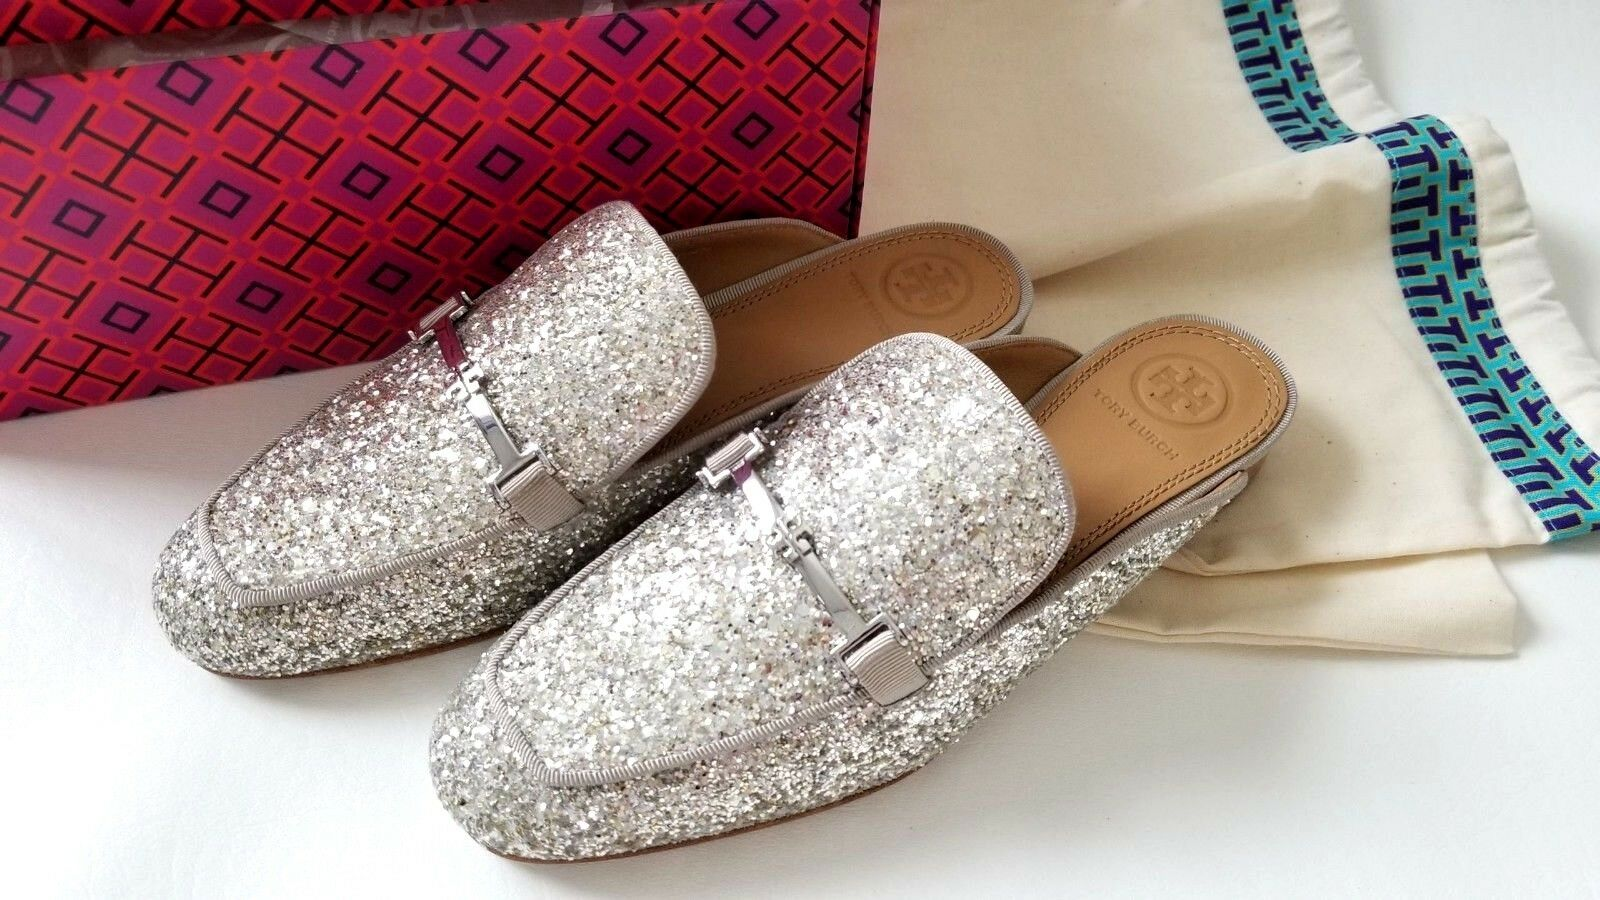 NEW Tory Burch glitter shimmer fabric Leather Loafers dress sandal shoes flats